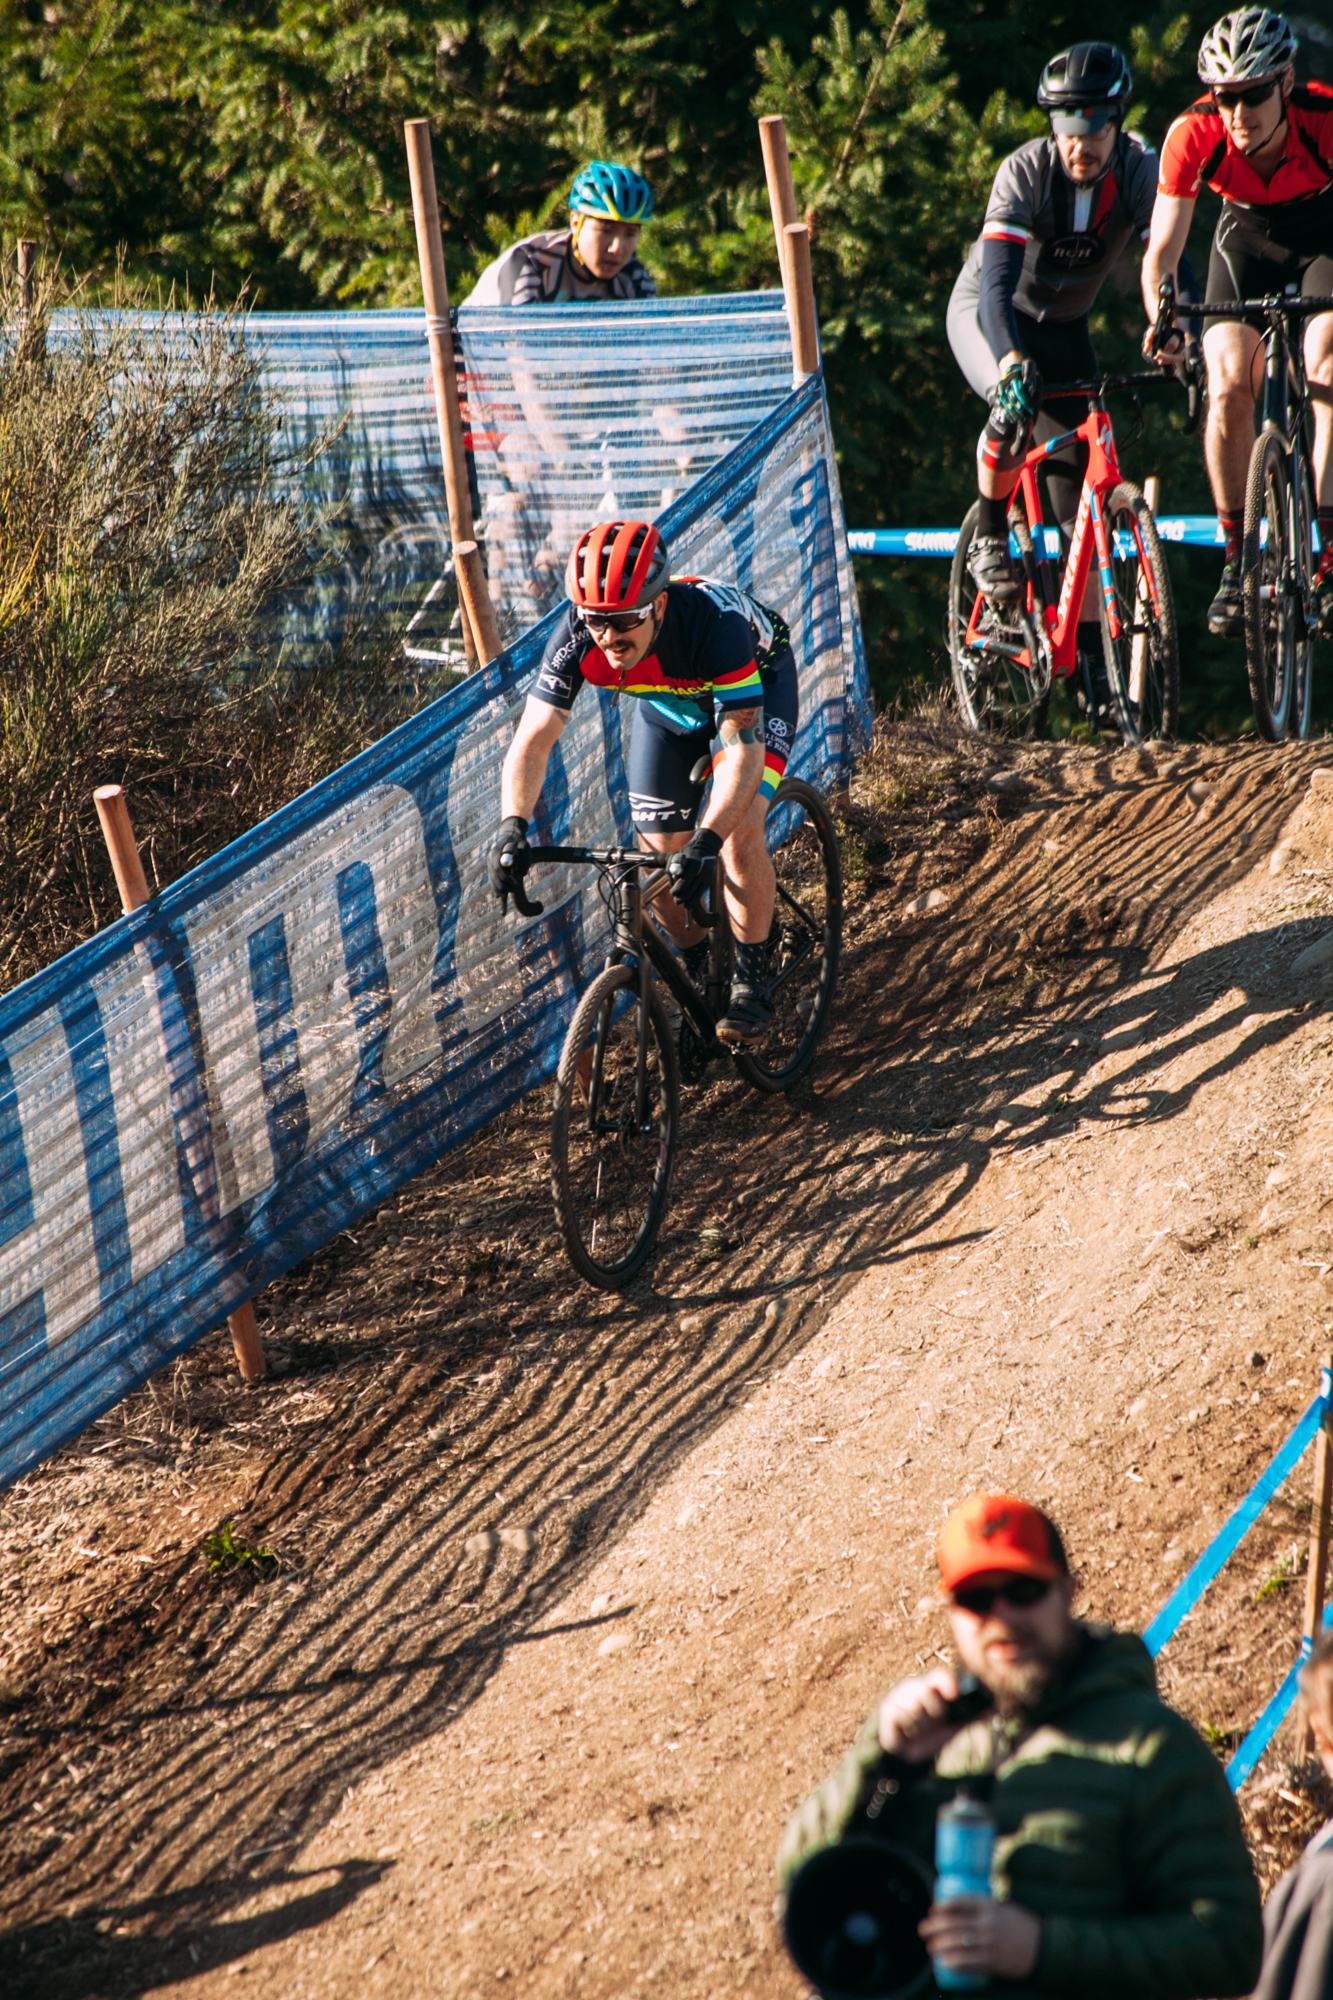 Cyclocross18_CCCX_BartonPark-mettlecycling58.jpg